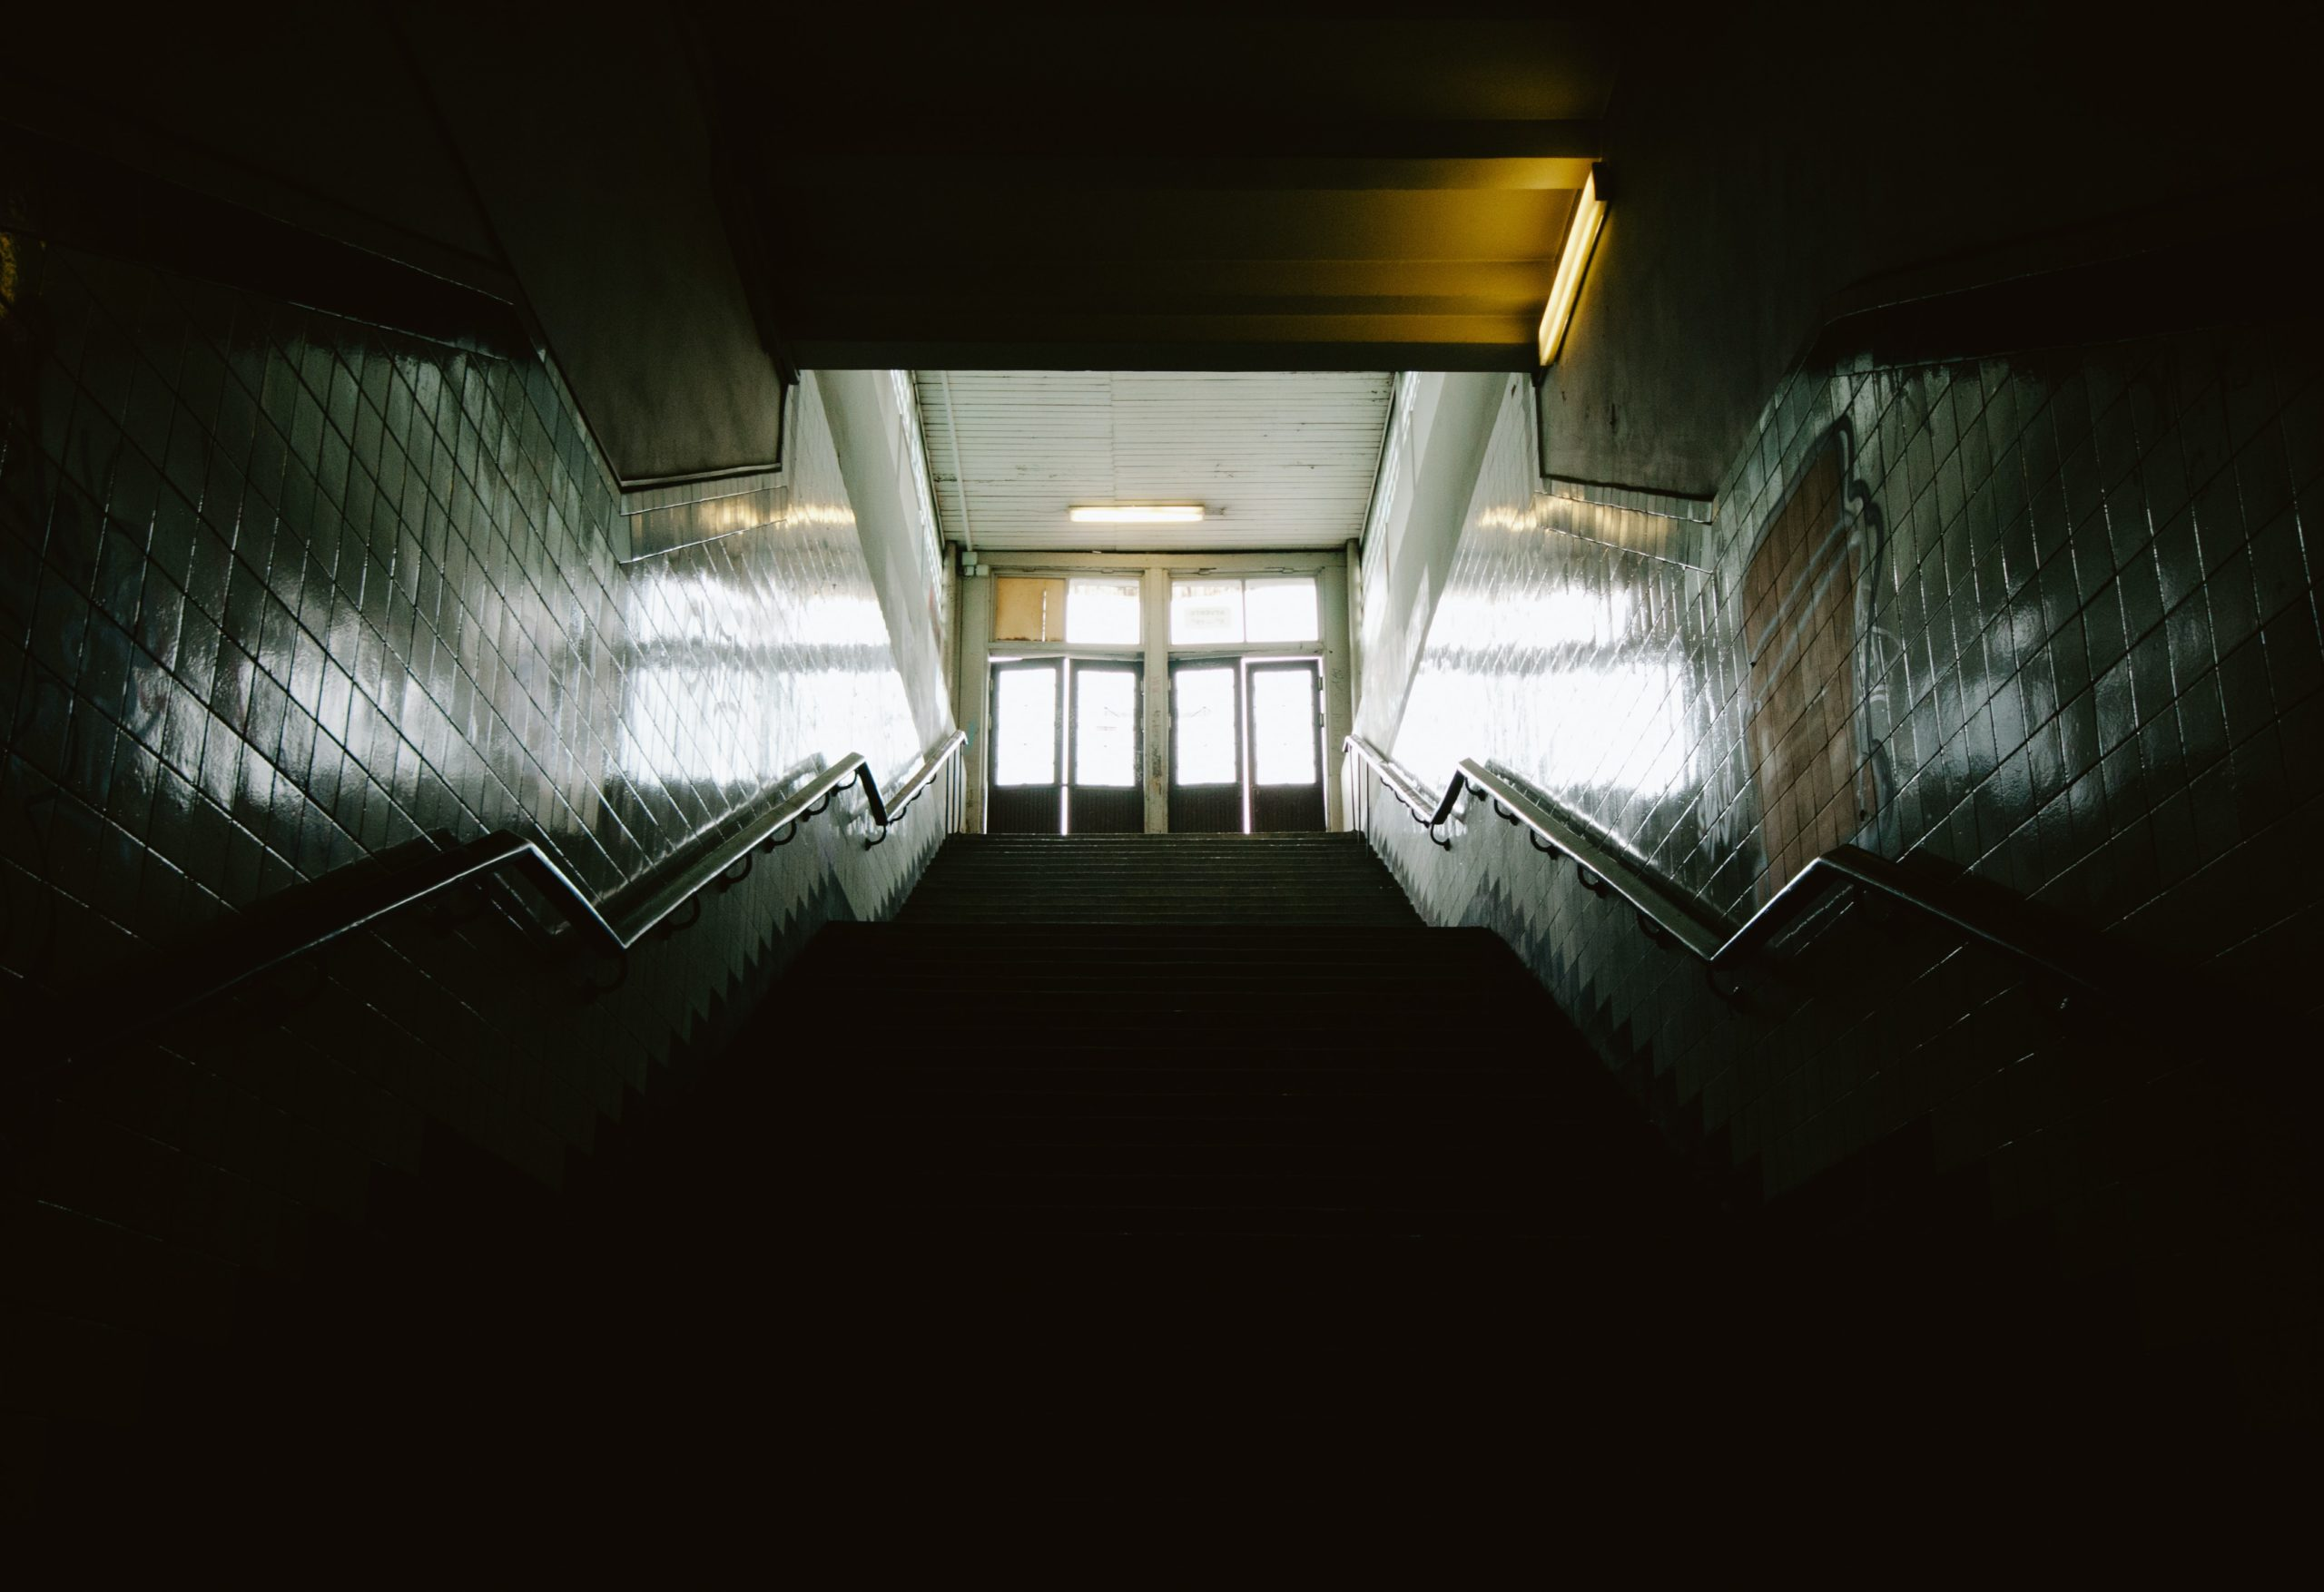 Empty School Stairwell with light shining through